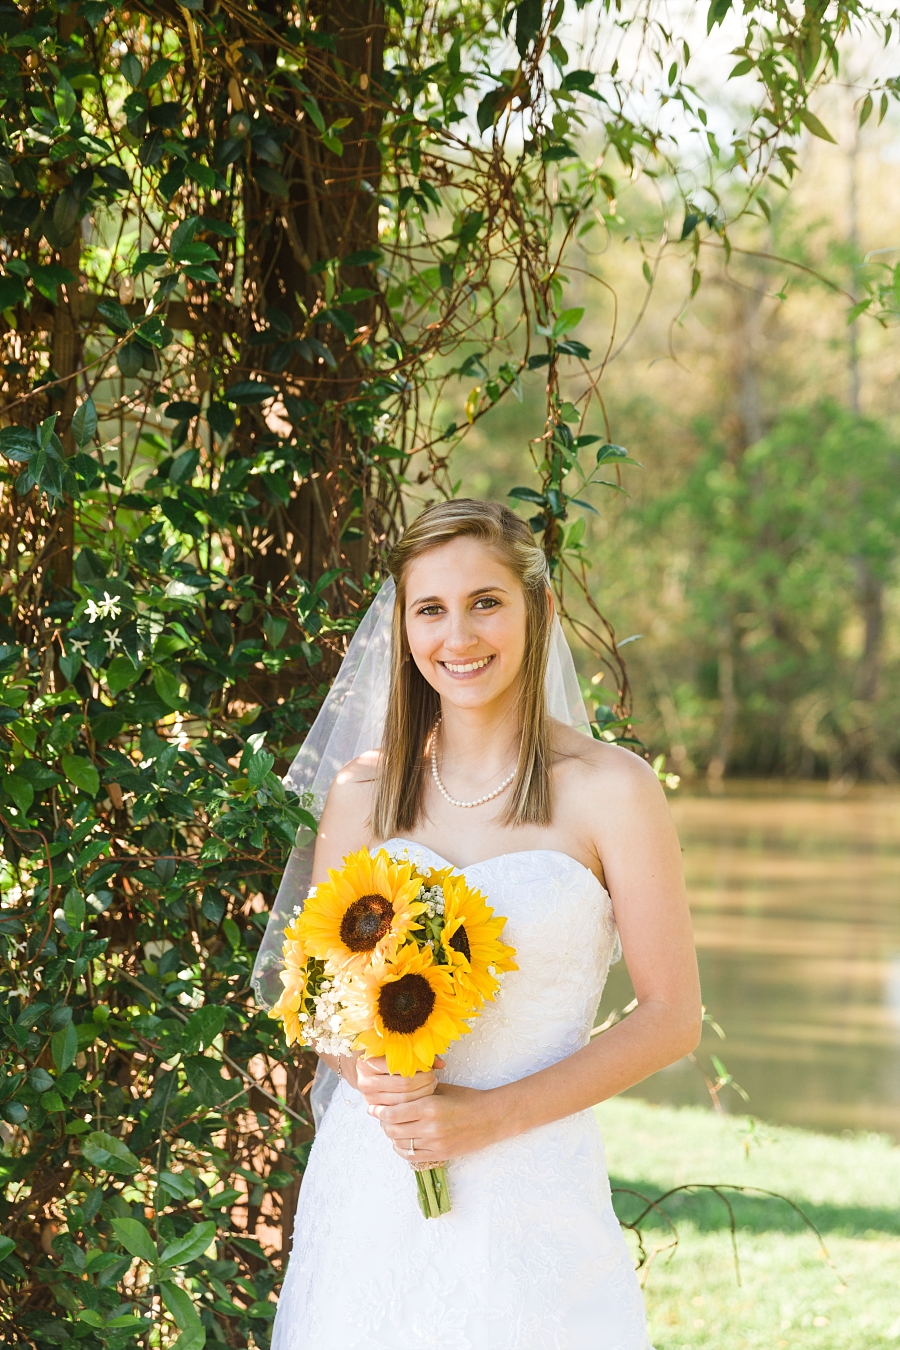 Stacy-Anderson-Photography-Carriage-House-Houston-Wedding-Photographer_0024.jpg